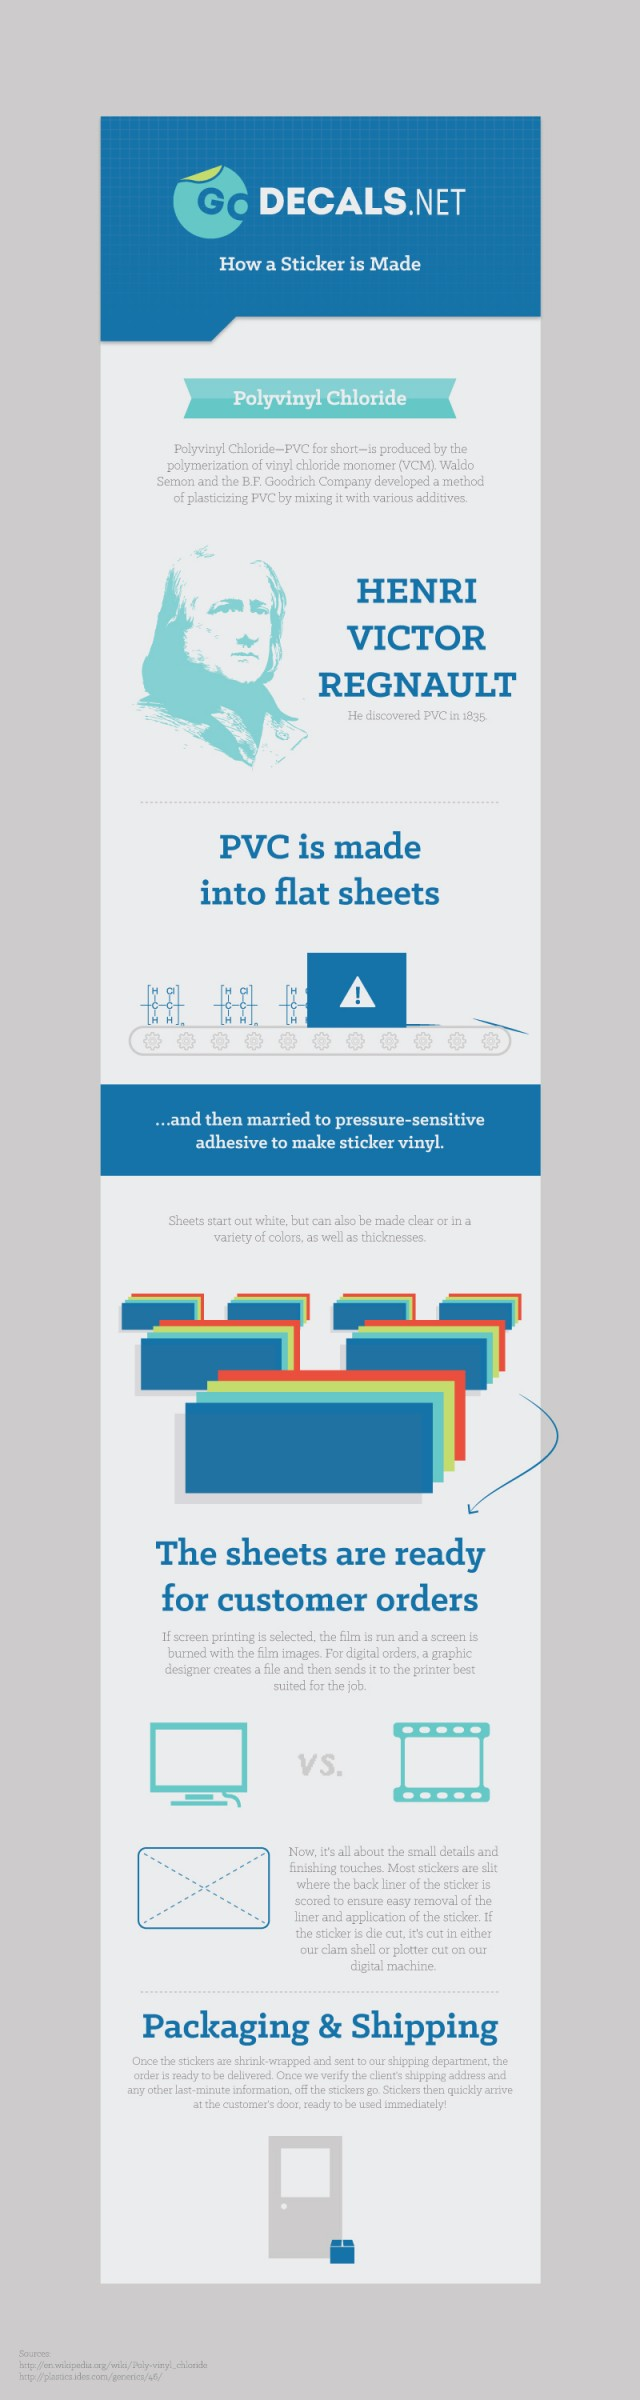 An infographic that describes how a decal is made. Sections include a definition of ployvinyl chloride and how it is laid into flat sheets.